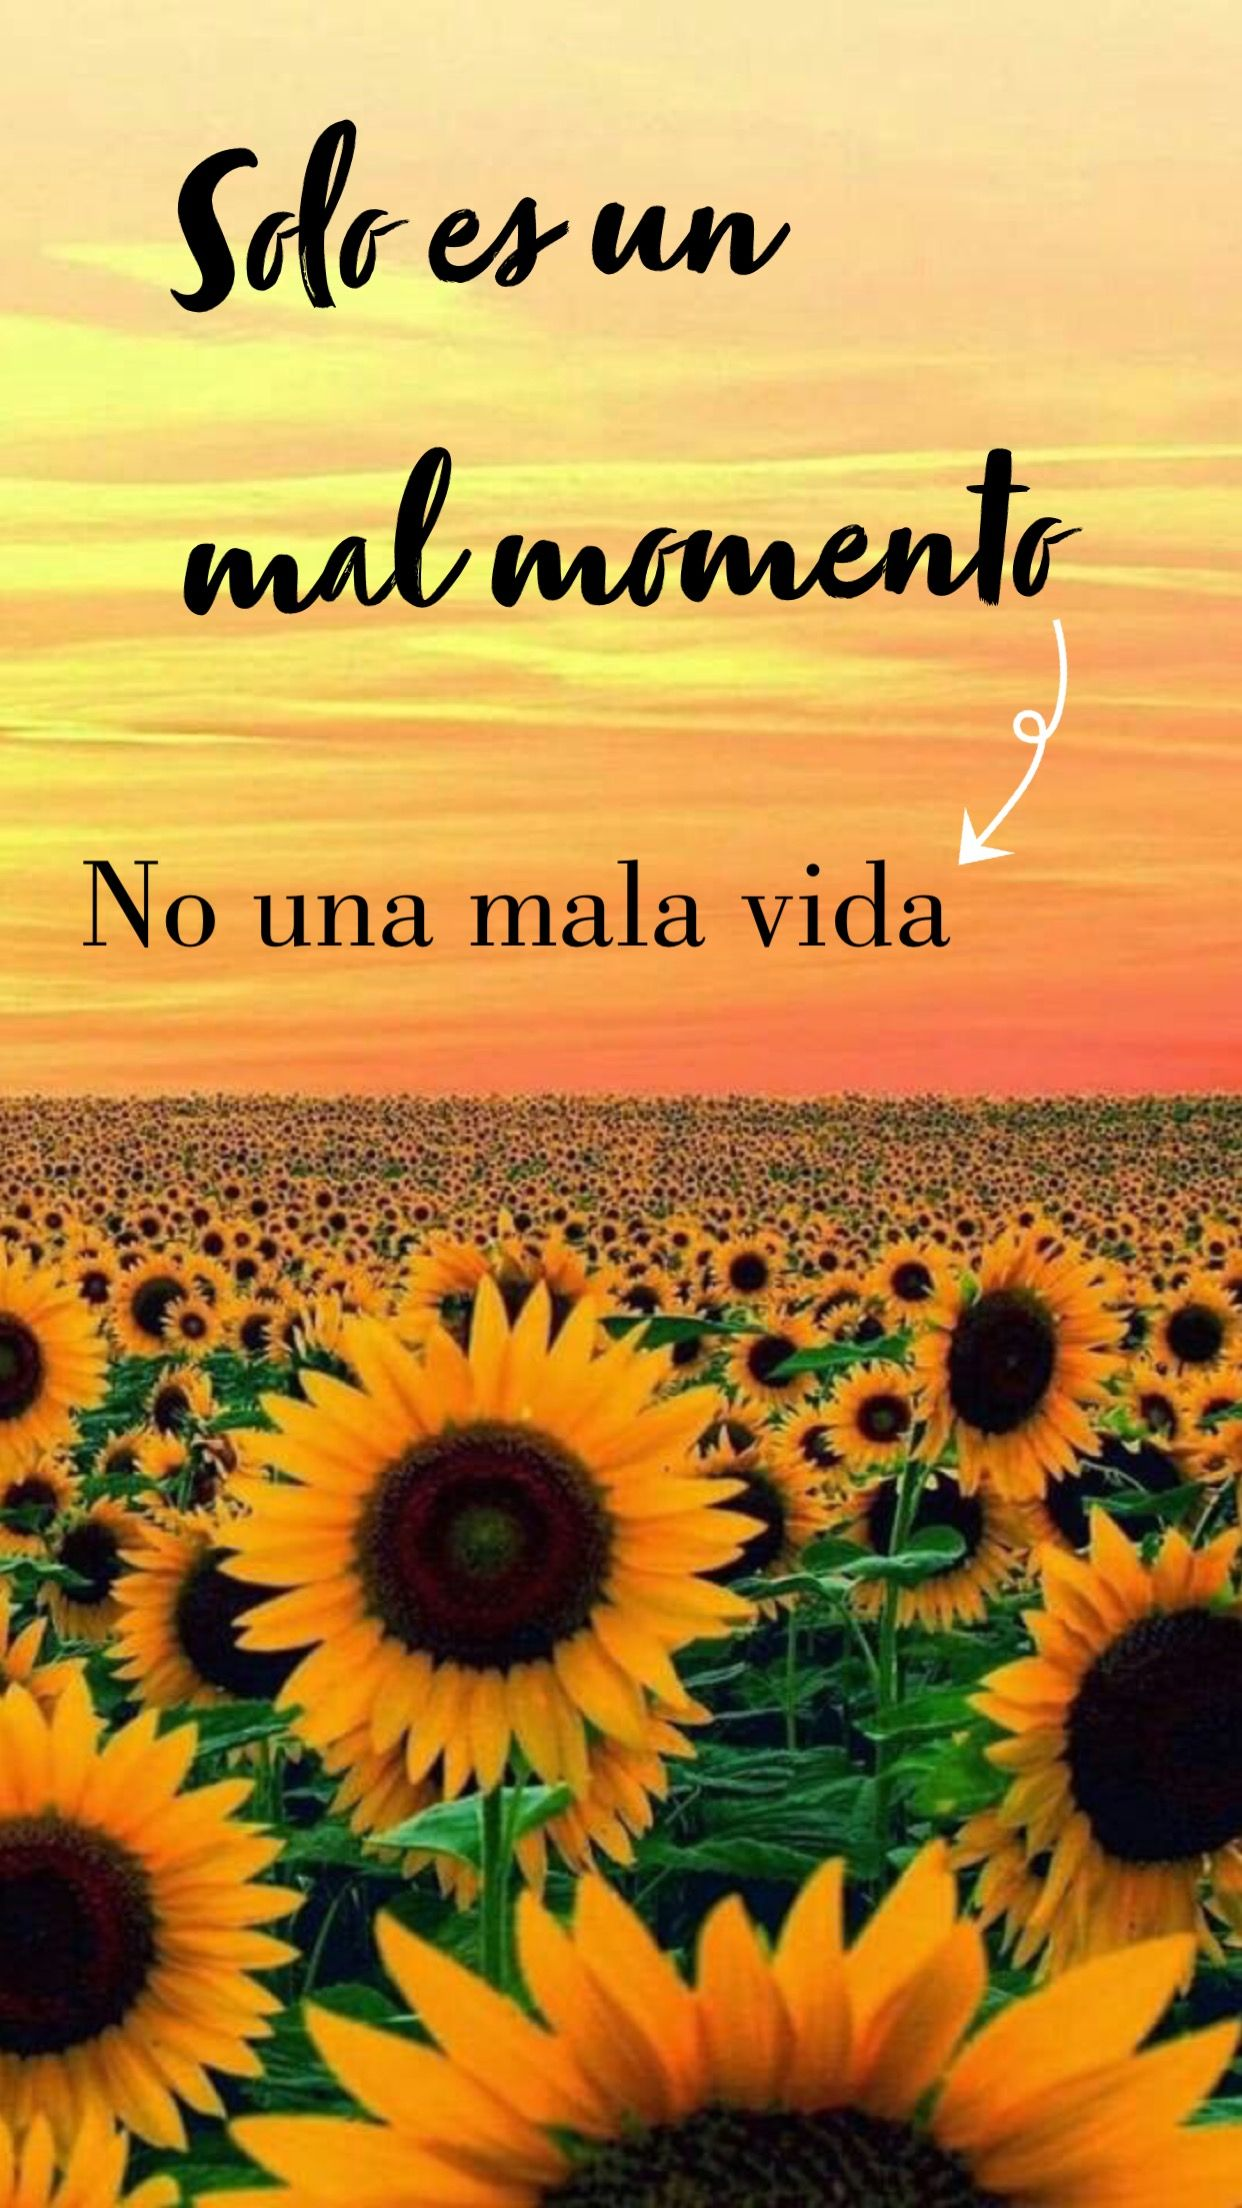 Pin By Erika Ayala E On Quotes Sunflower Quotes Its Friday Quotes Flower Quotes * frases en conmemoracion al dia internacional de la mujer para compartir.feliz dia de la mujer. pin by erika ayala e on quotes